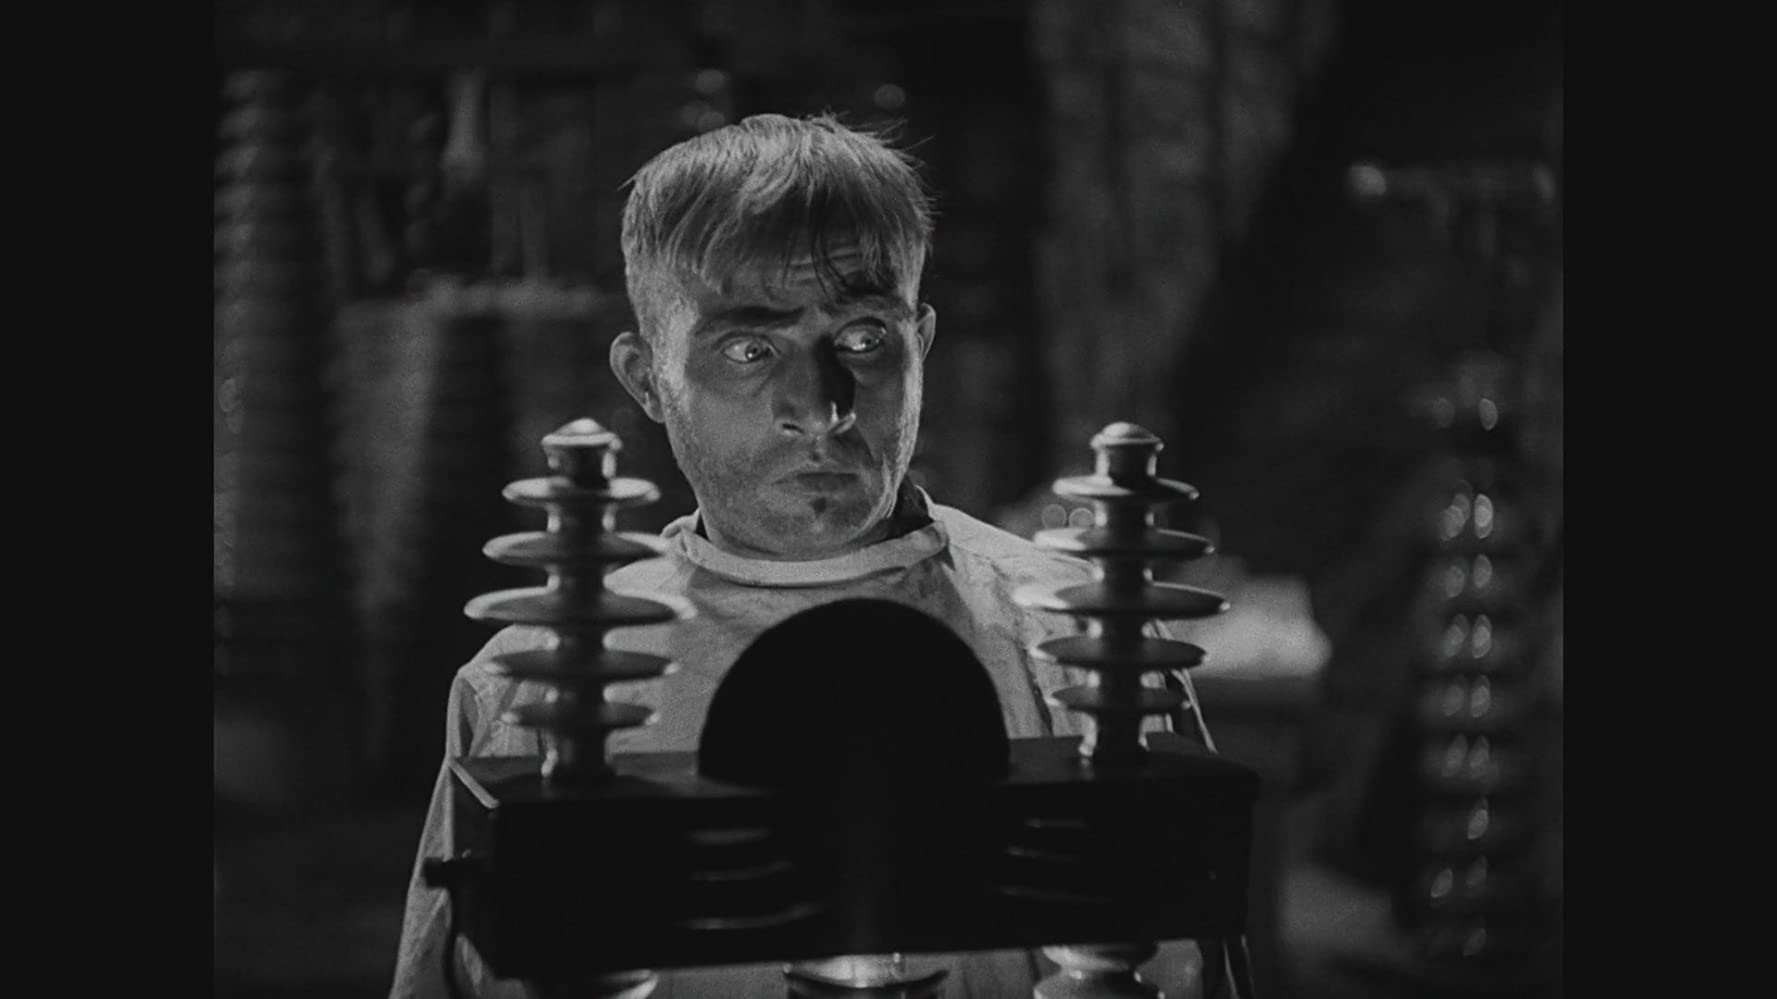 Dwight Frye in Bride of Frankenstein (1935)